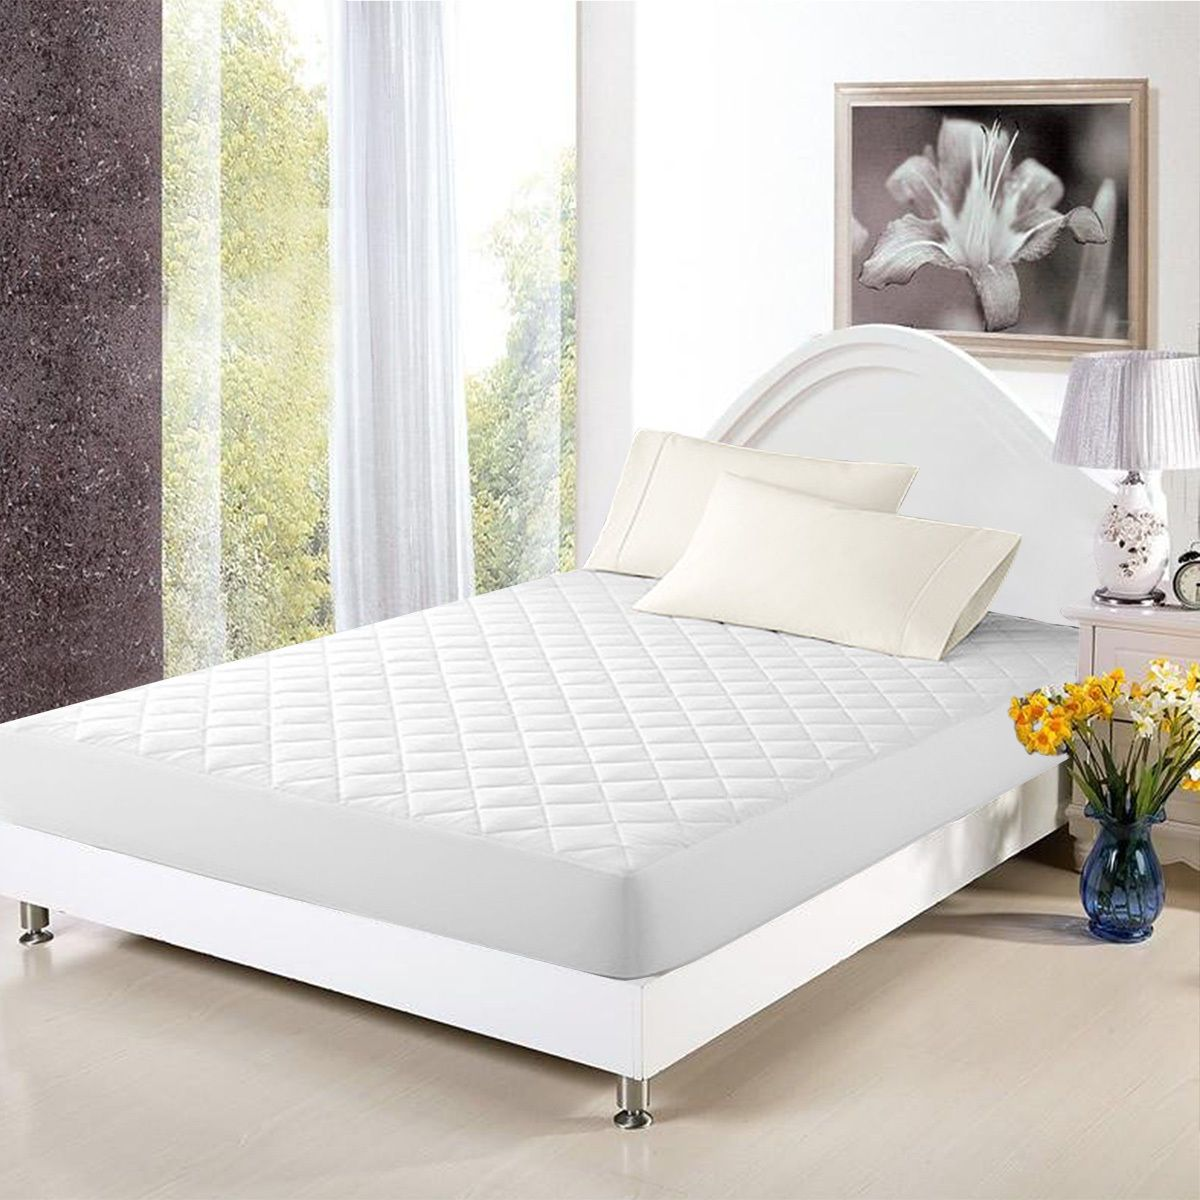 5 sizes pad protector mattress cover mattress covers mattress and